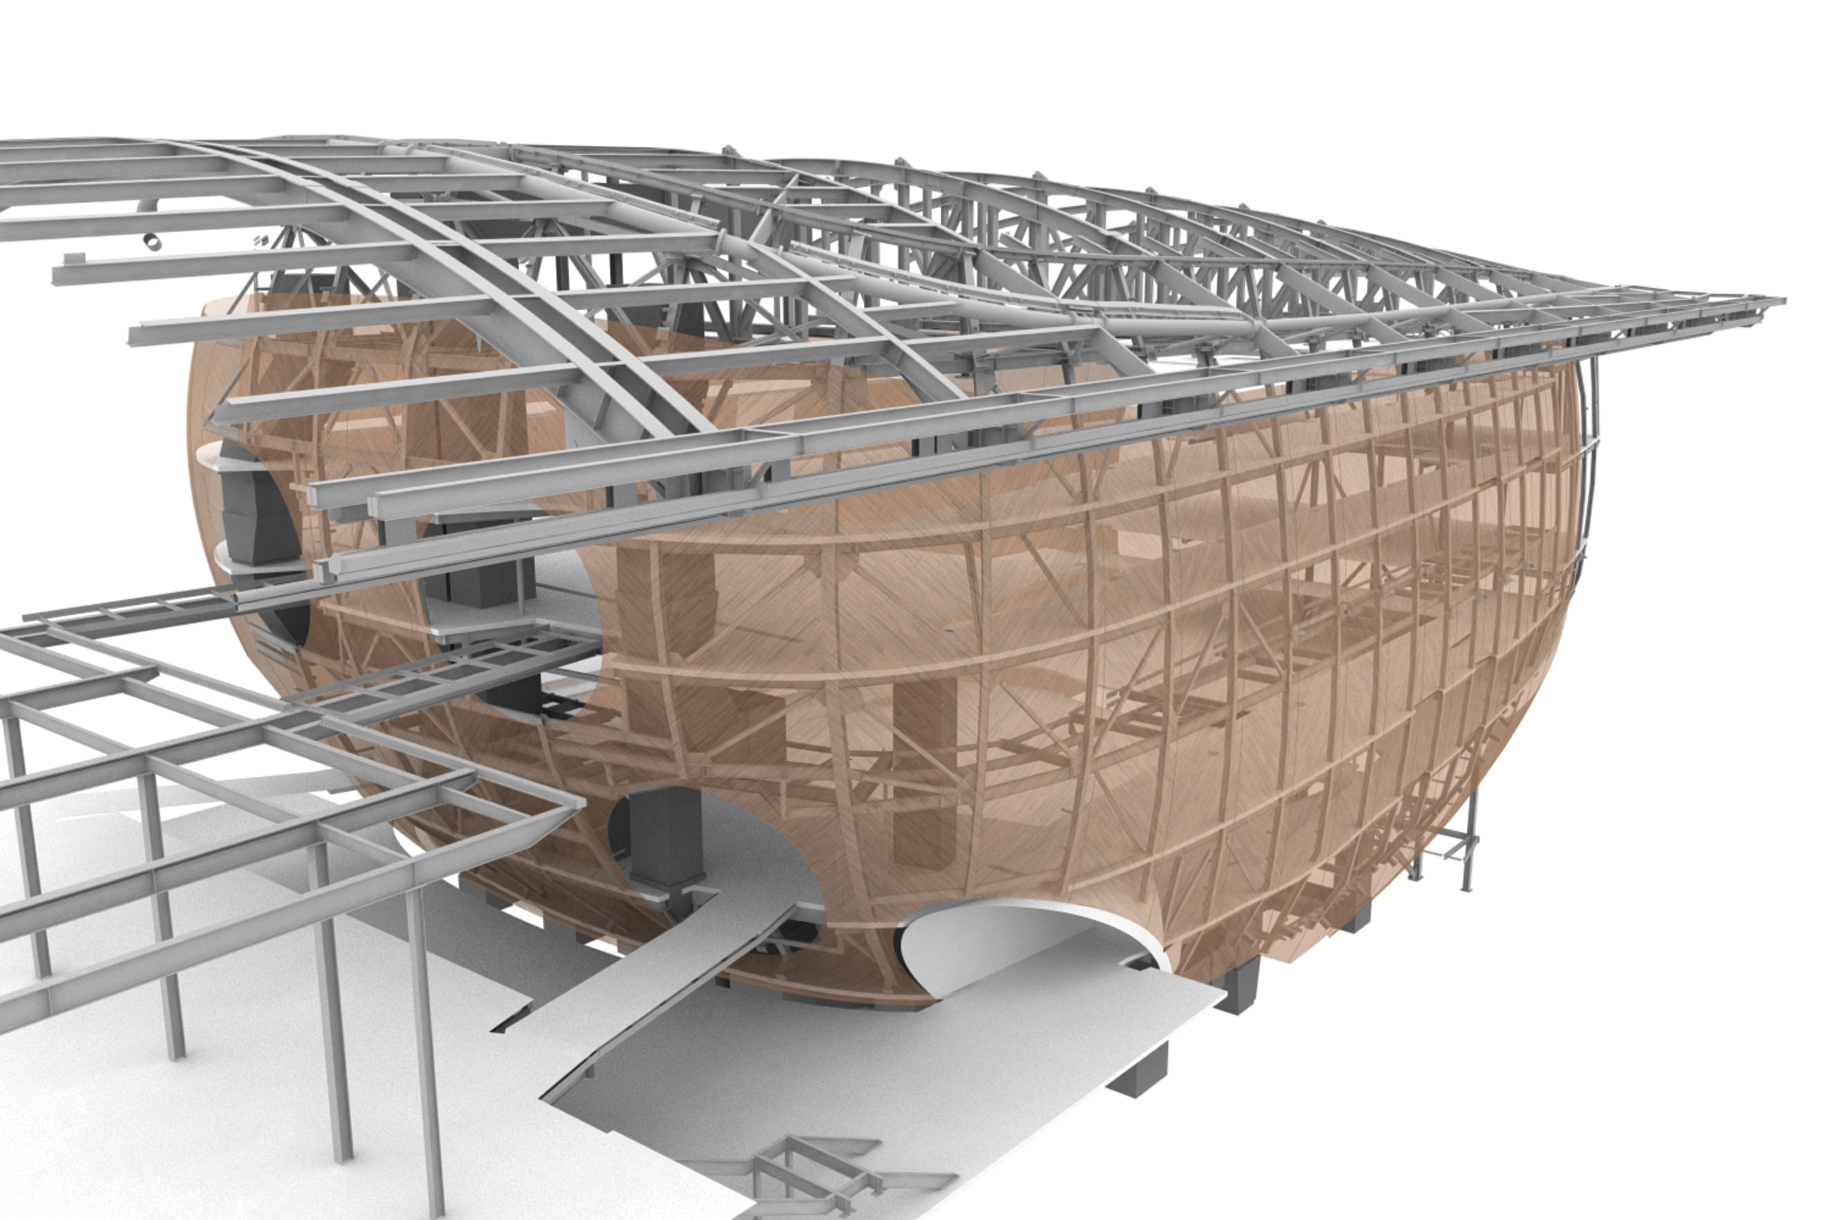 EMPAC - Hull and Roof Coordination Model